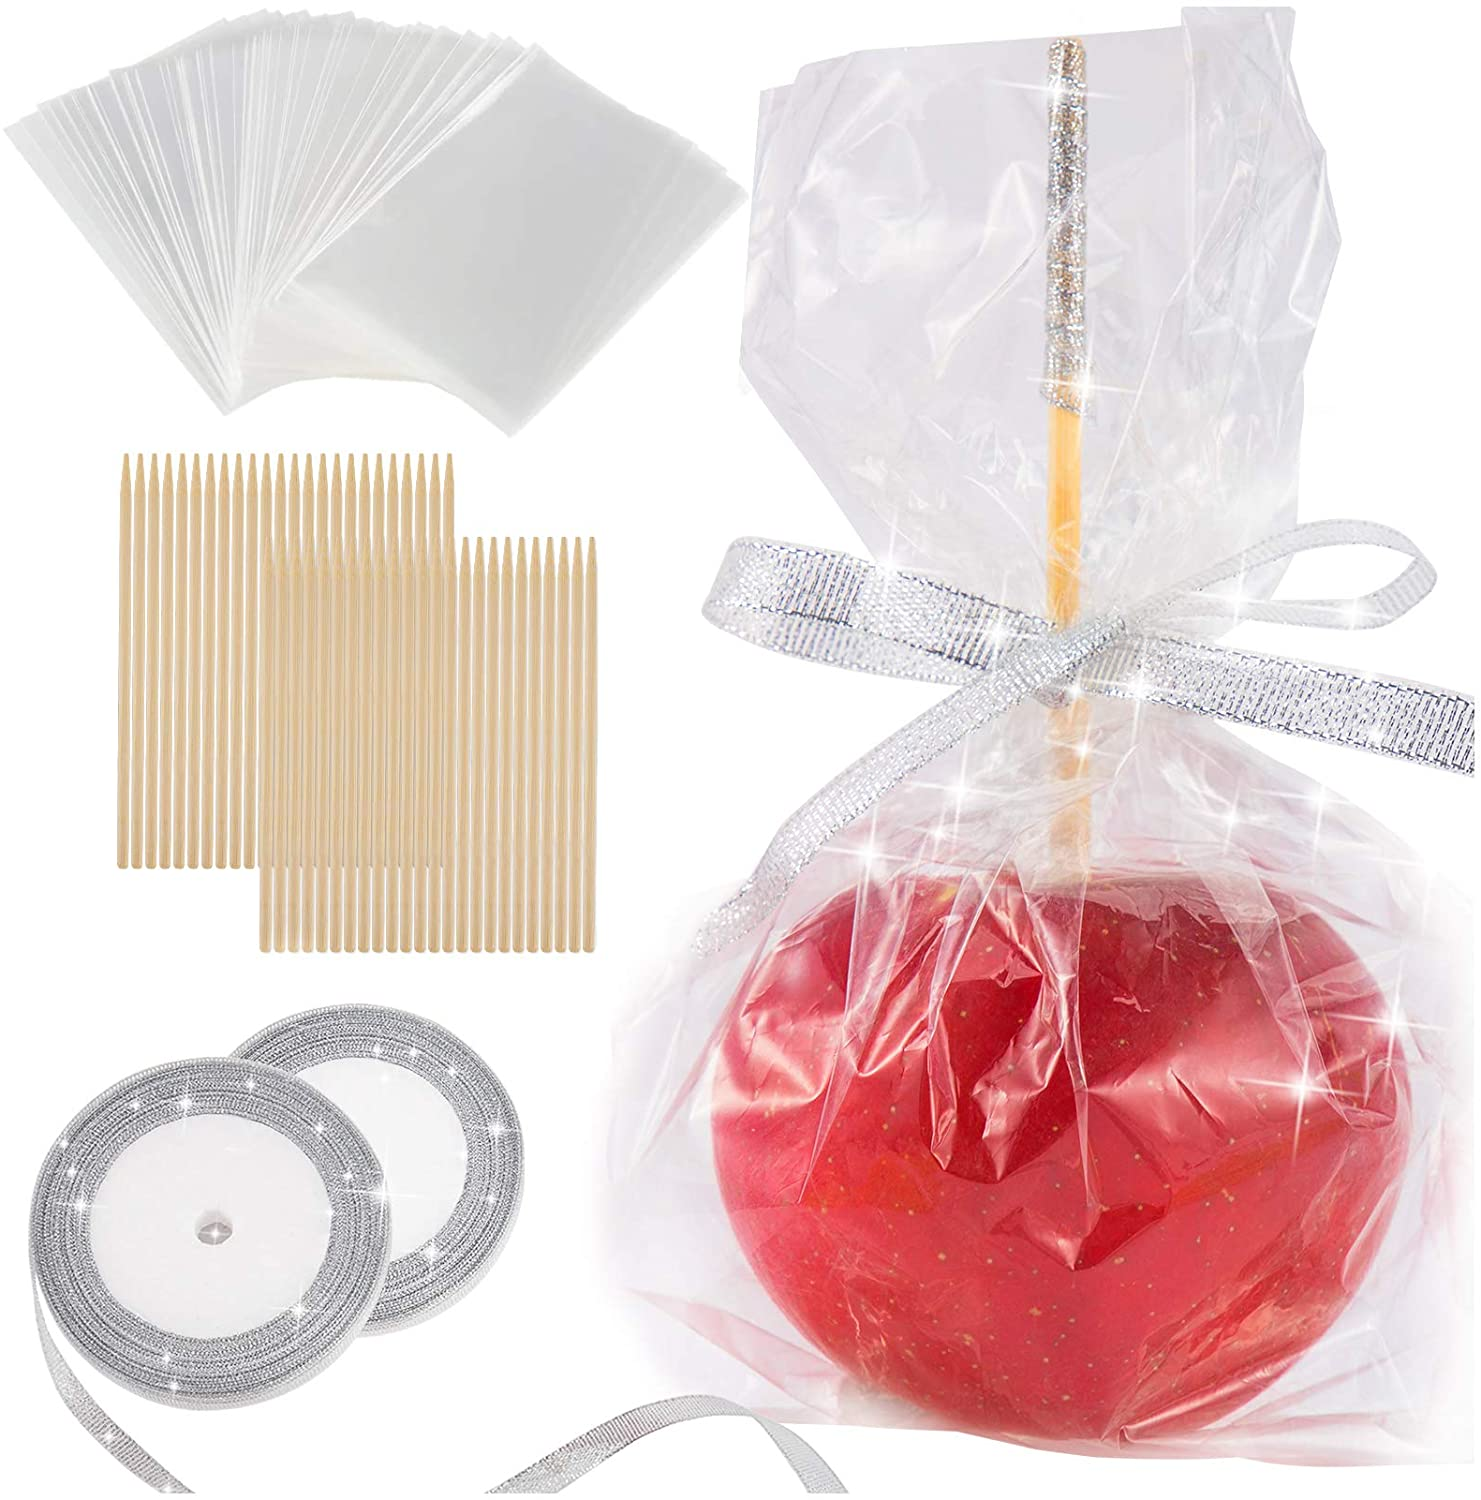 DIY Candy Apple Making Accessory Kits-Include 48 Pcs Bamboo Sticks & Parcel Bags and 2 rolls of 25 yd Glitter Ribbon Large Lollipop Pop Kit for Fruit Cookie Wrapping Buffet Party (Silver)